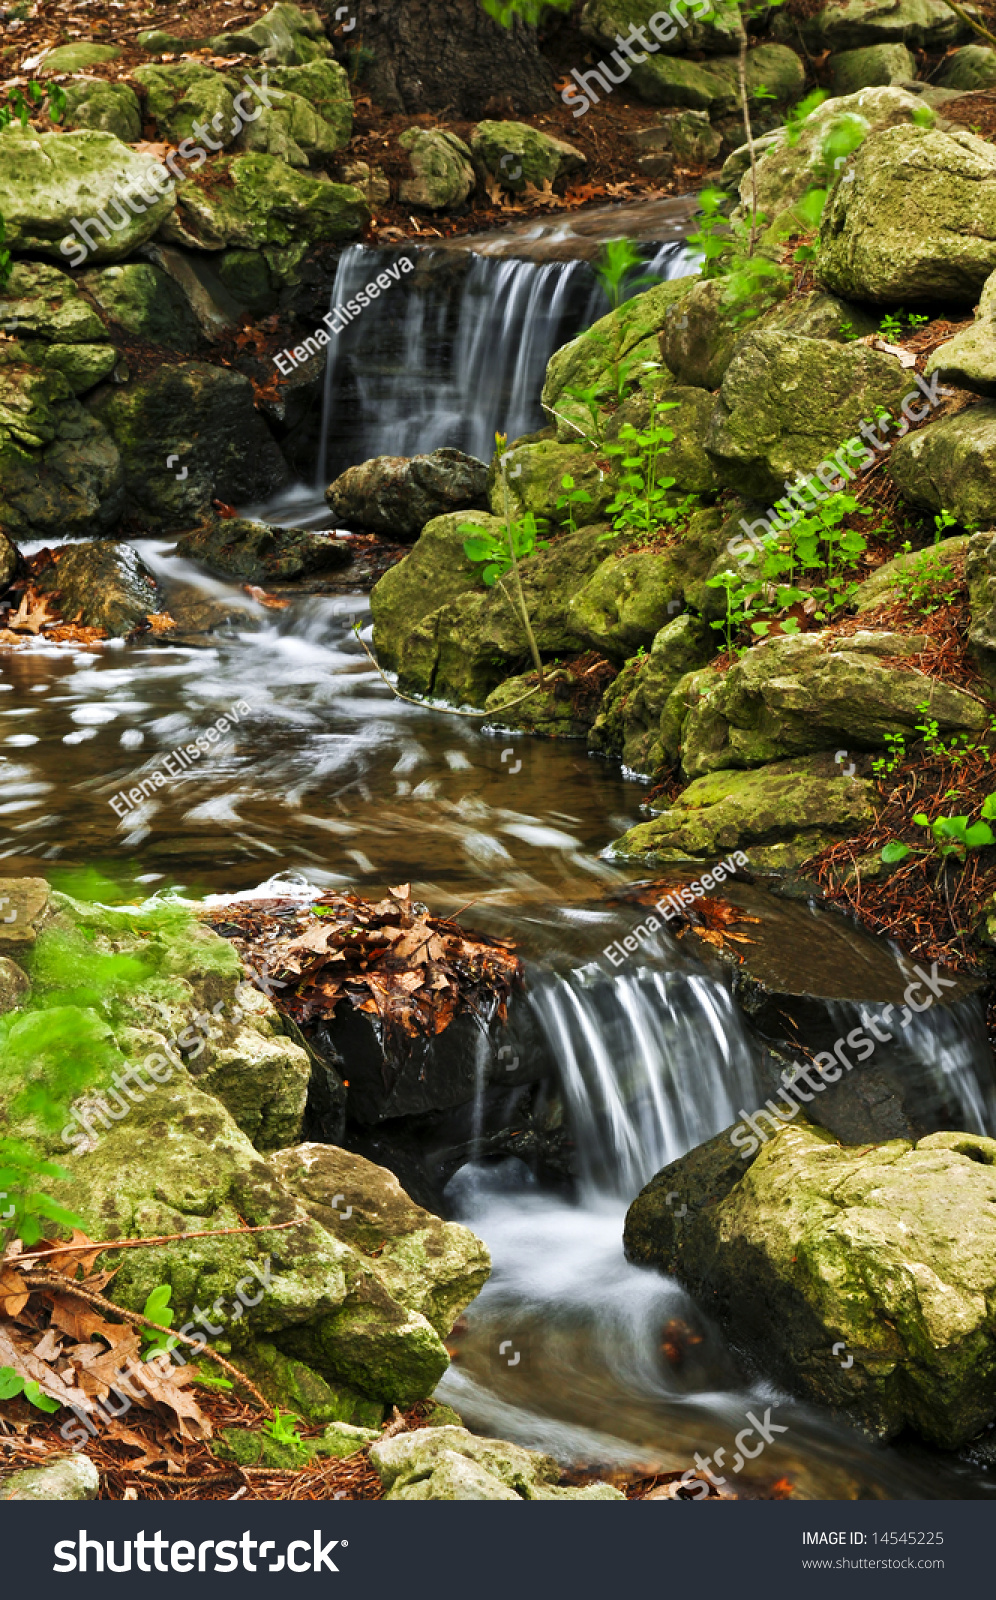 Creek Small Waterfalls Japanese Zen Garden Stock Photo & Image ...